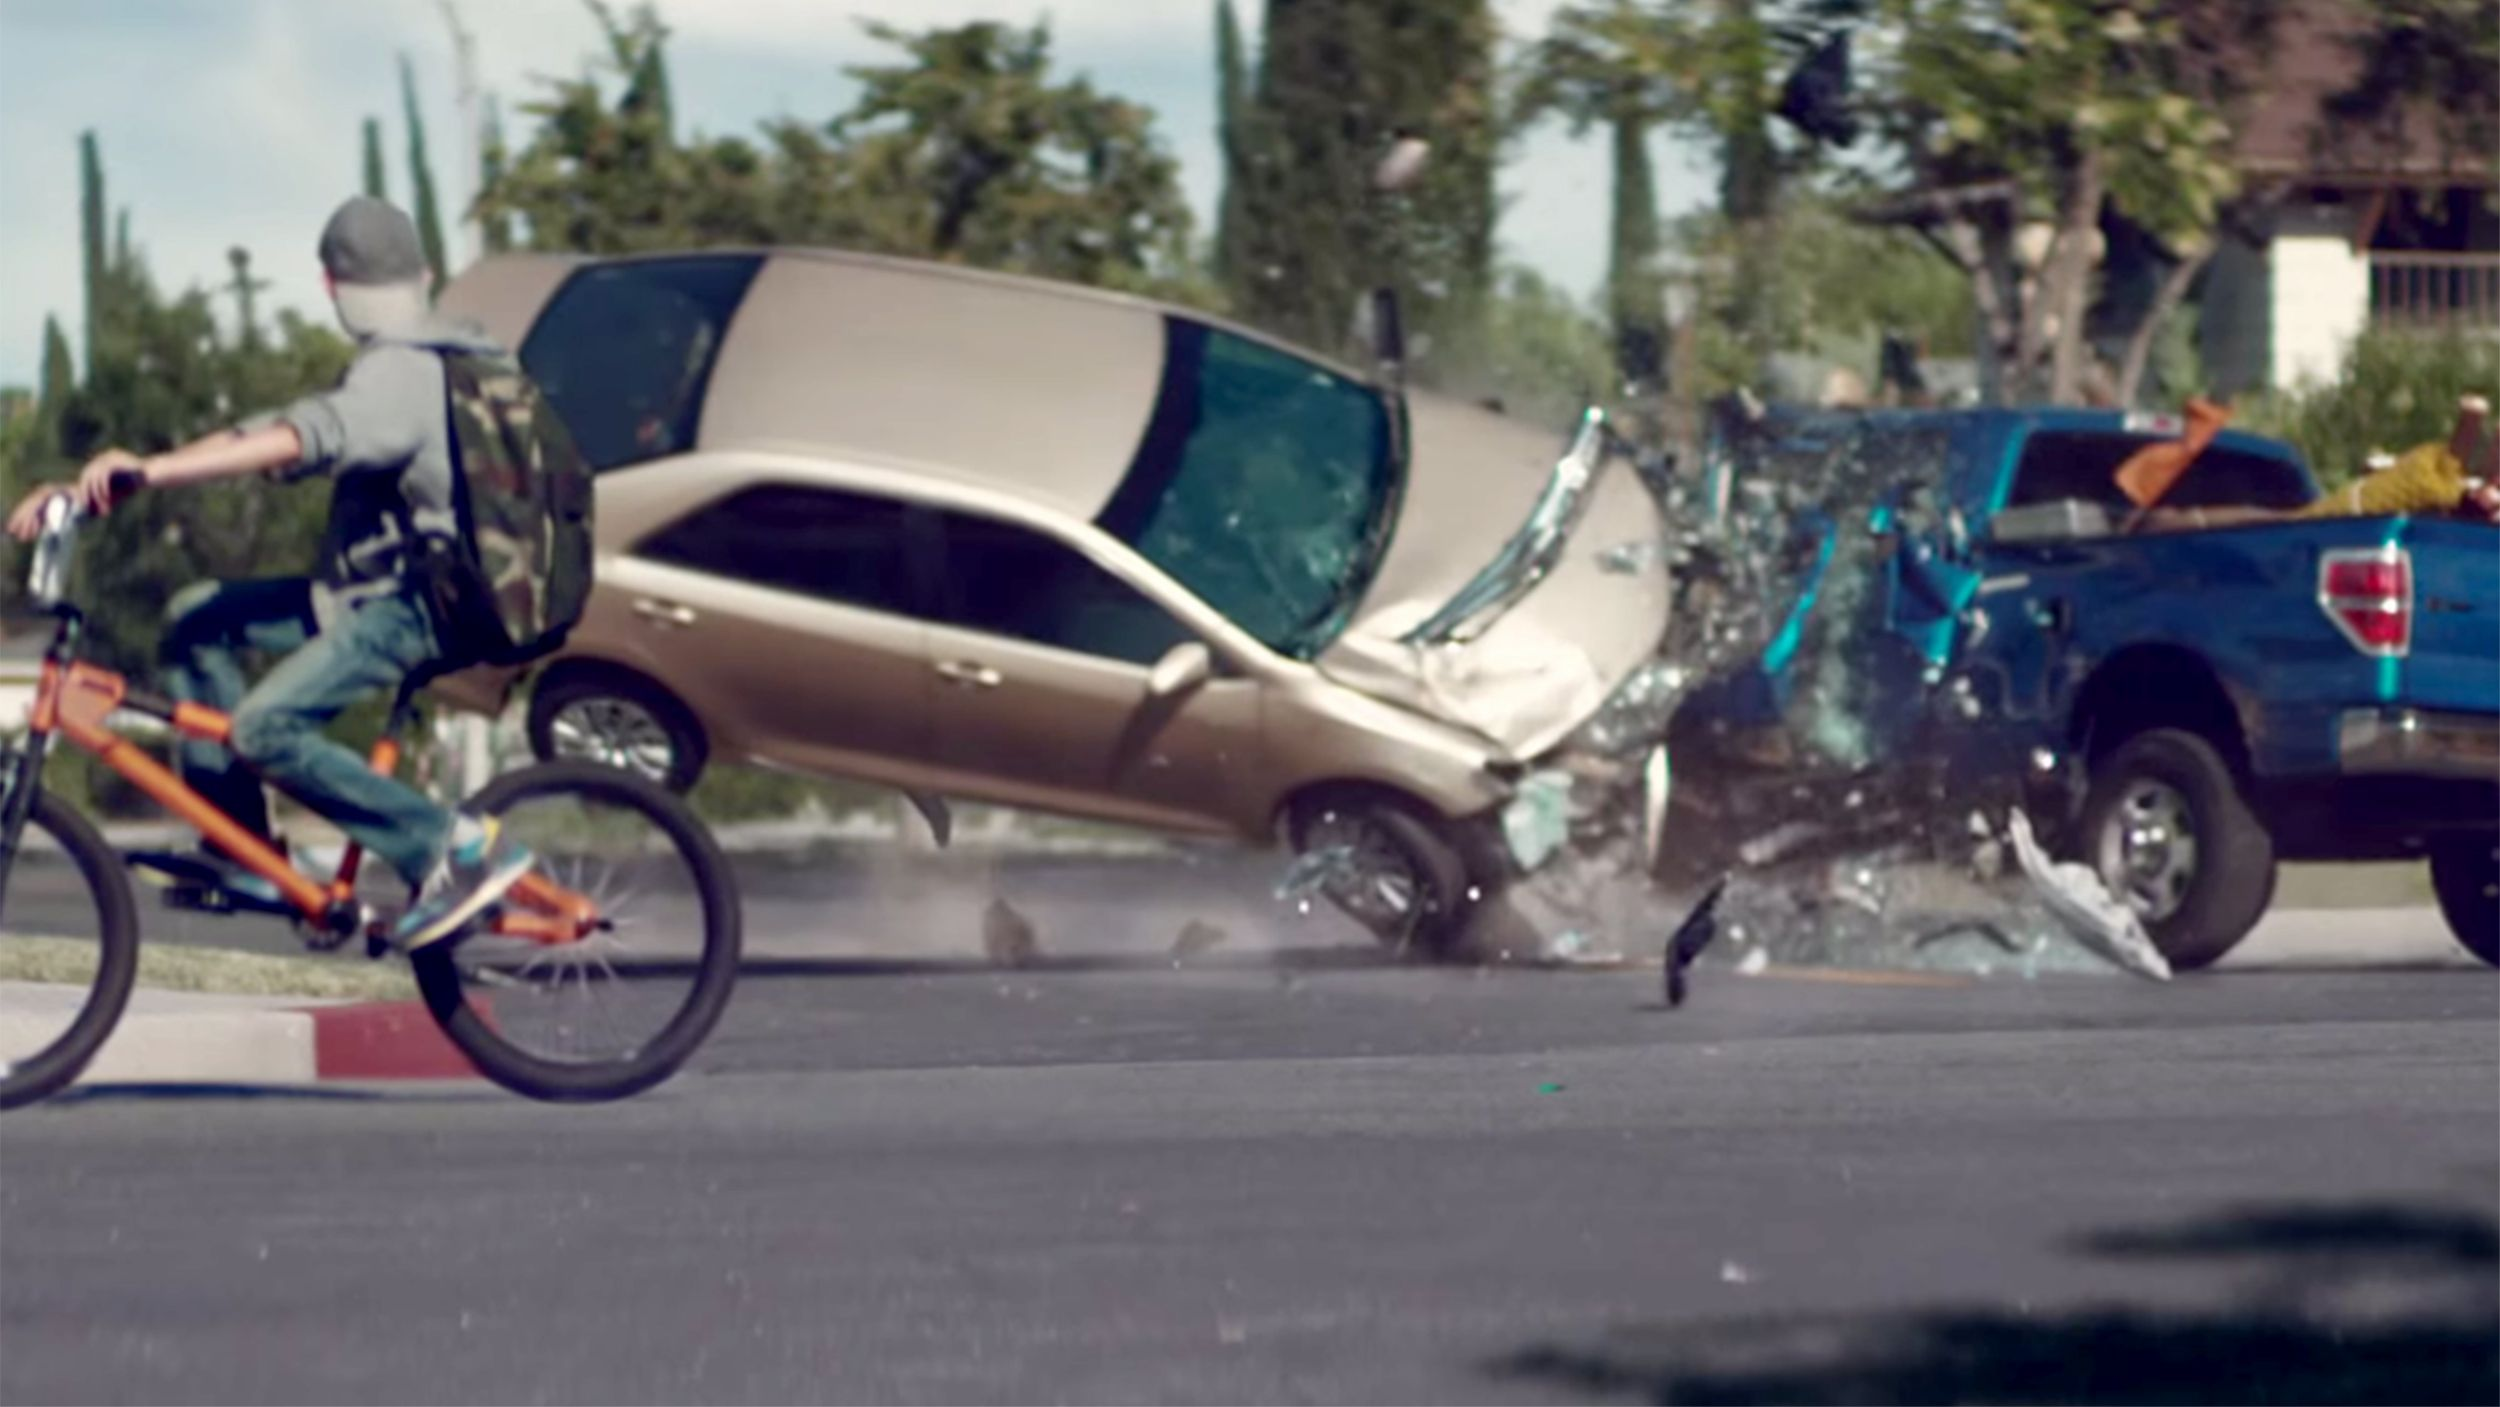 Current Car Crashes From Distracted Driving